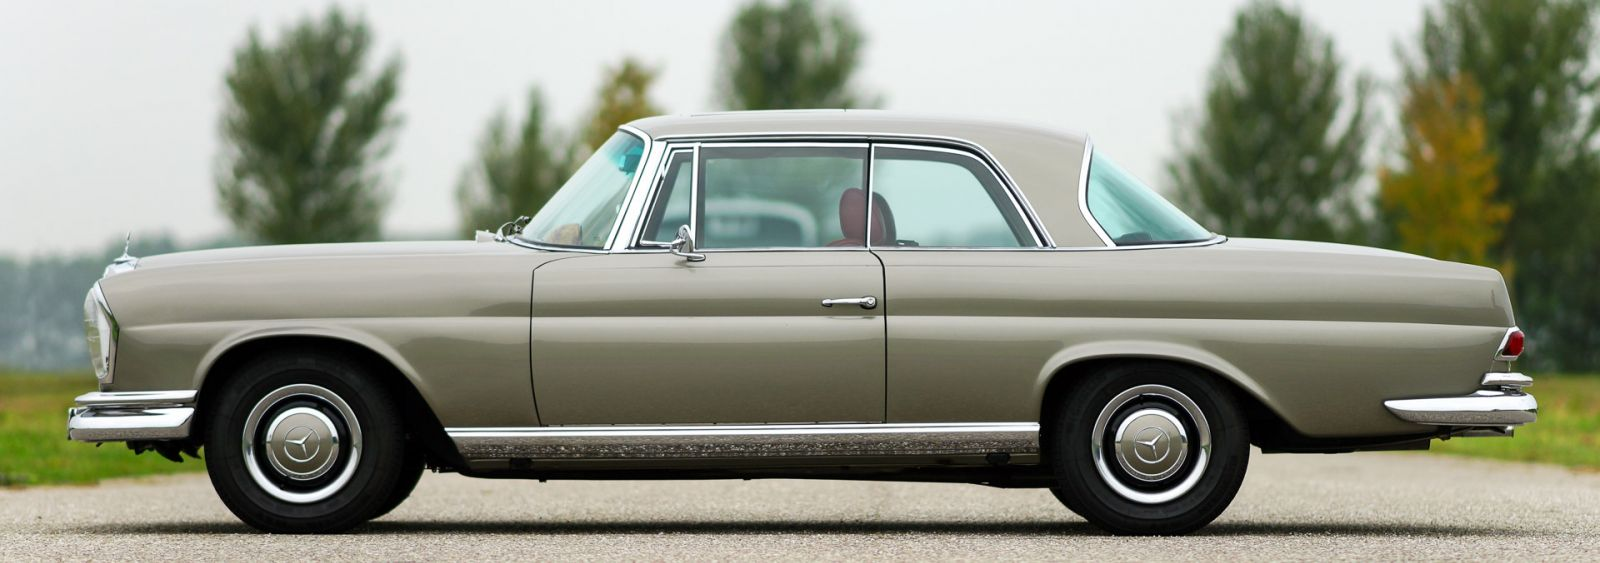 mercedes benz 250 se coupe 1966 welcome to classicargarage. Black Bedroom Furniture Sets. Home Design Ideas